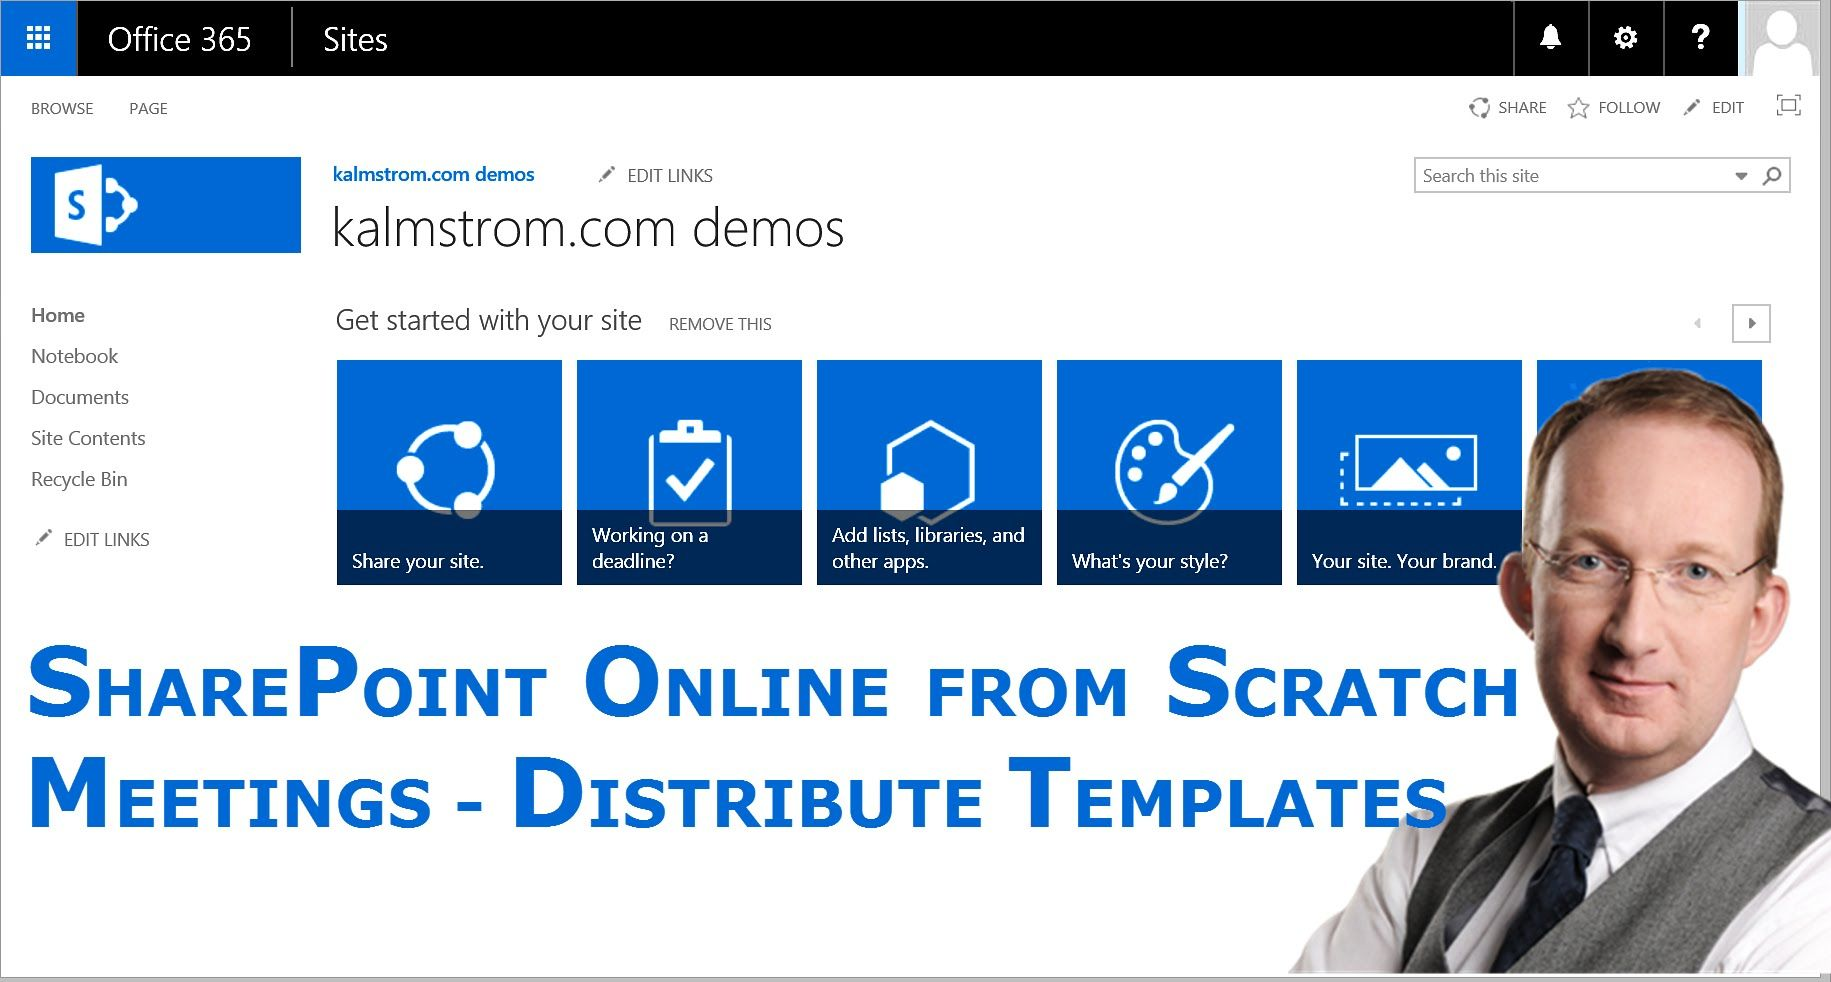 Distribute List Templates - SharePoint Meetings Management* Upload ...